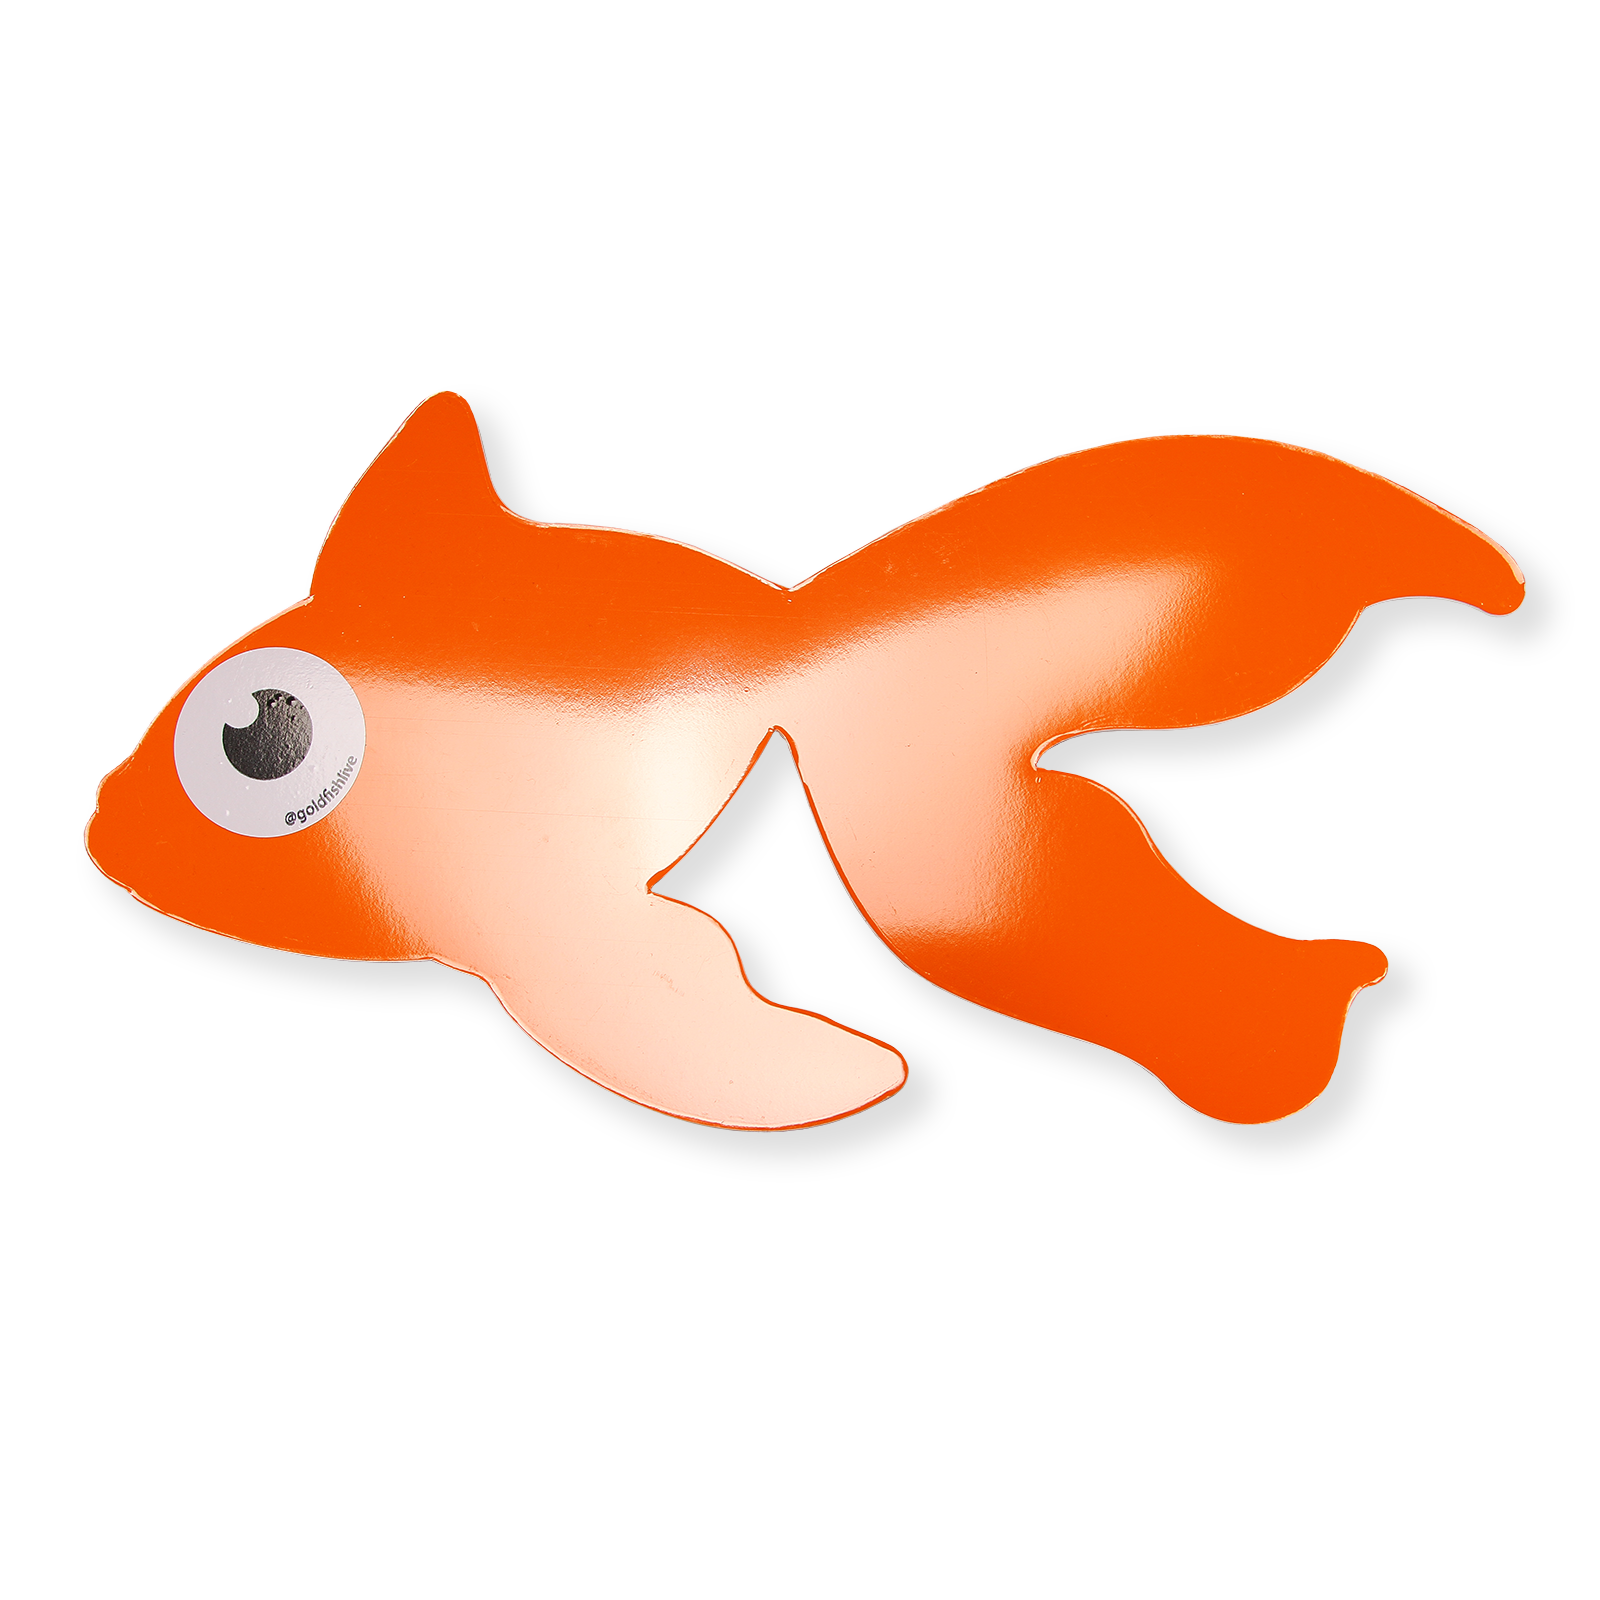 Blinky cut out . Goldfish clipart mascot